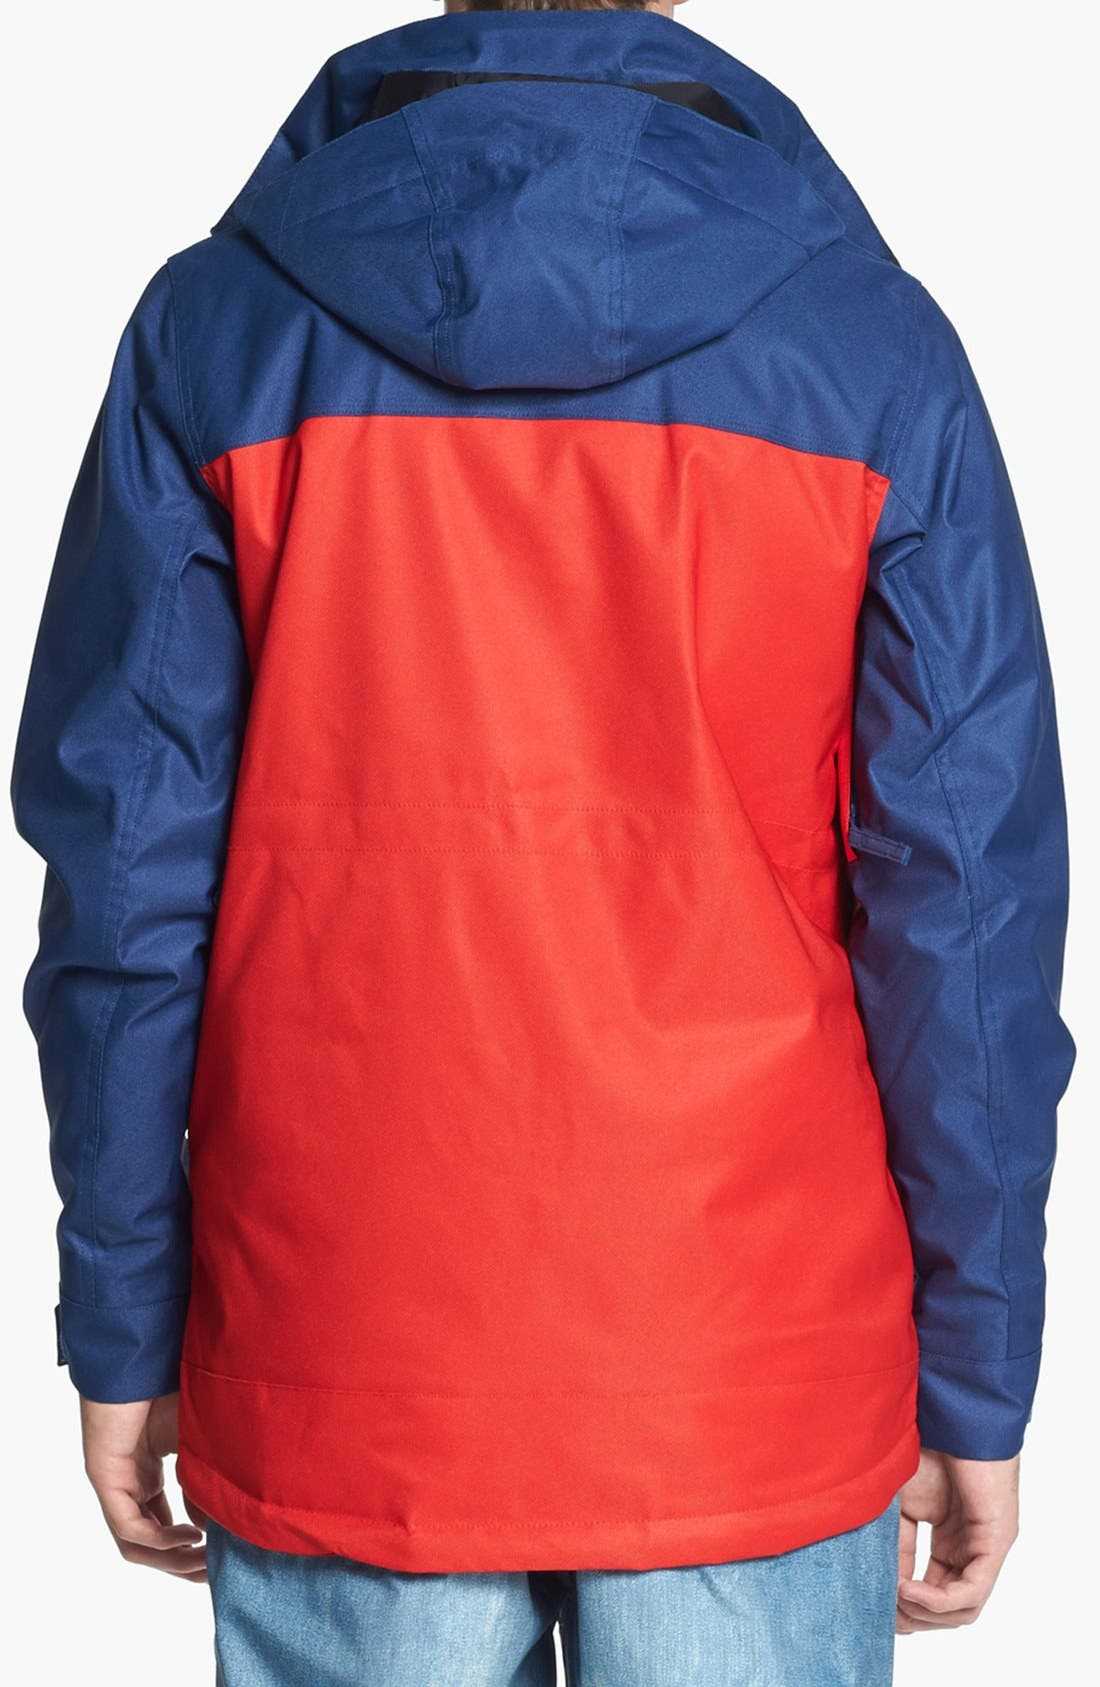 BURTON,                             'The White Collection - Cannon' Waterproof Jacket,                             Alternate thumbnail 4, color,                             414